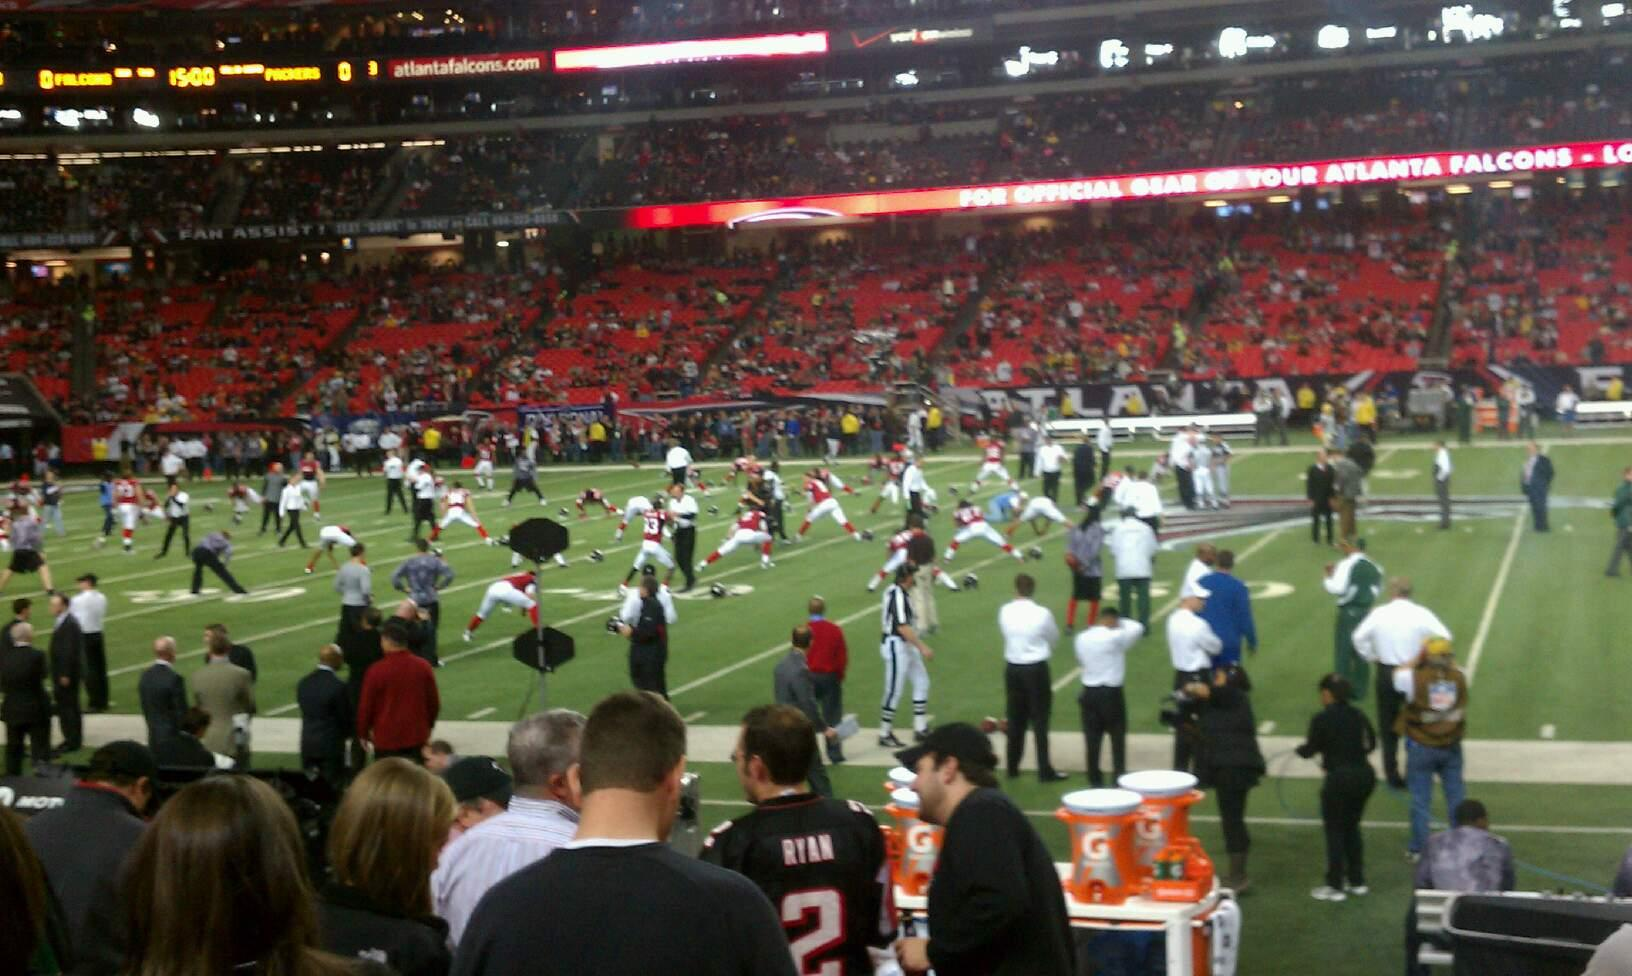 Georgia Dome Section 115 Row 7 Seat 11